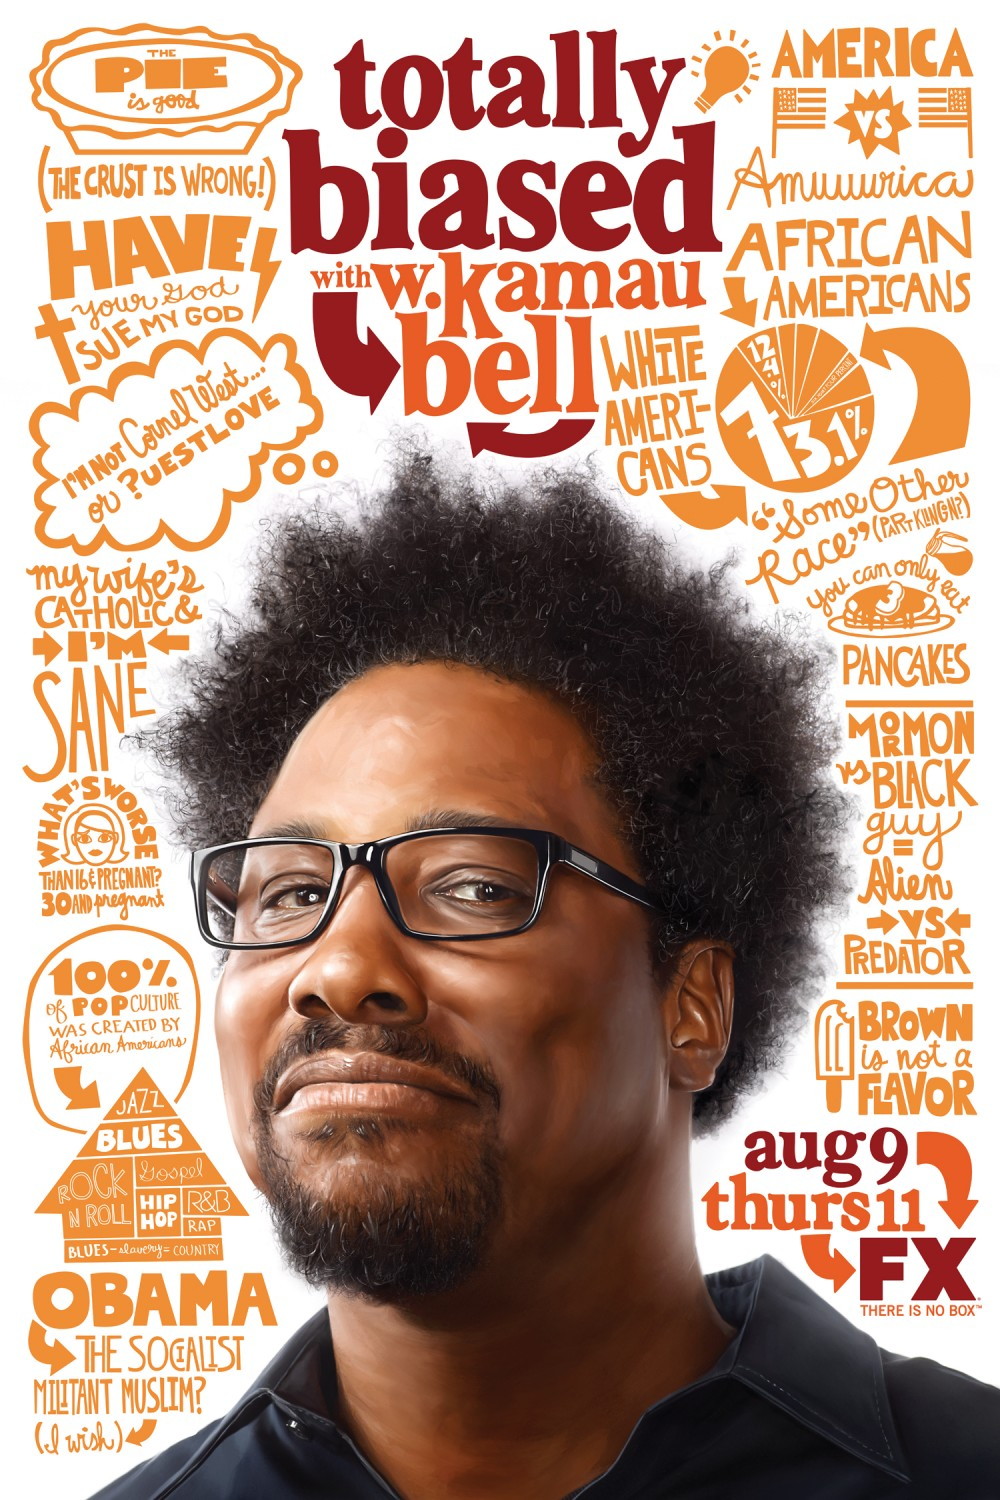 Totally Biased With W. Kamau Bell thumbnail